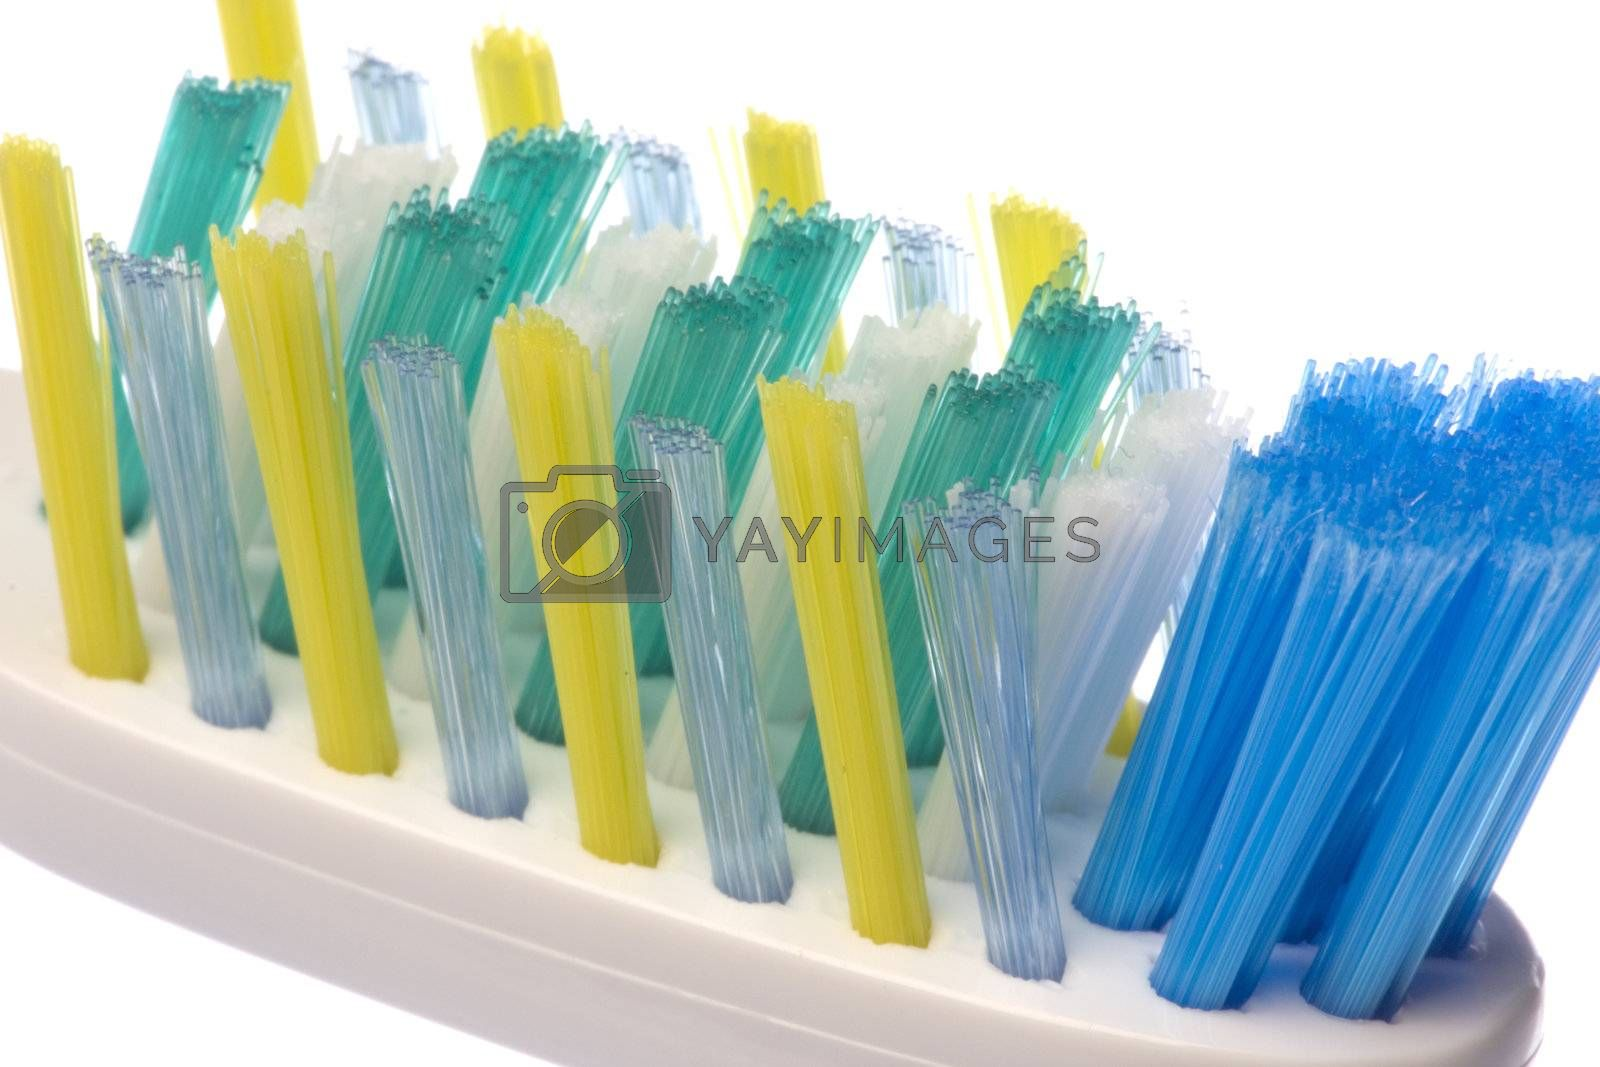 Isolated macro image of a toothbrush.